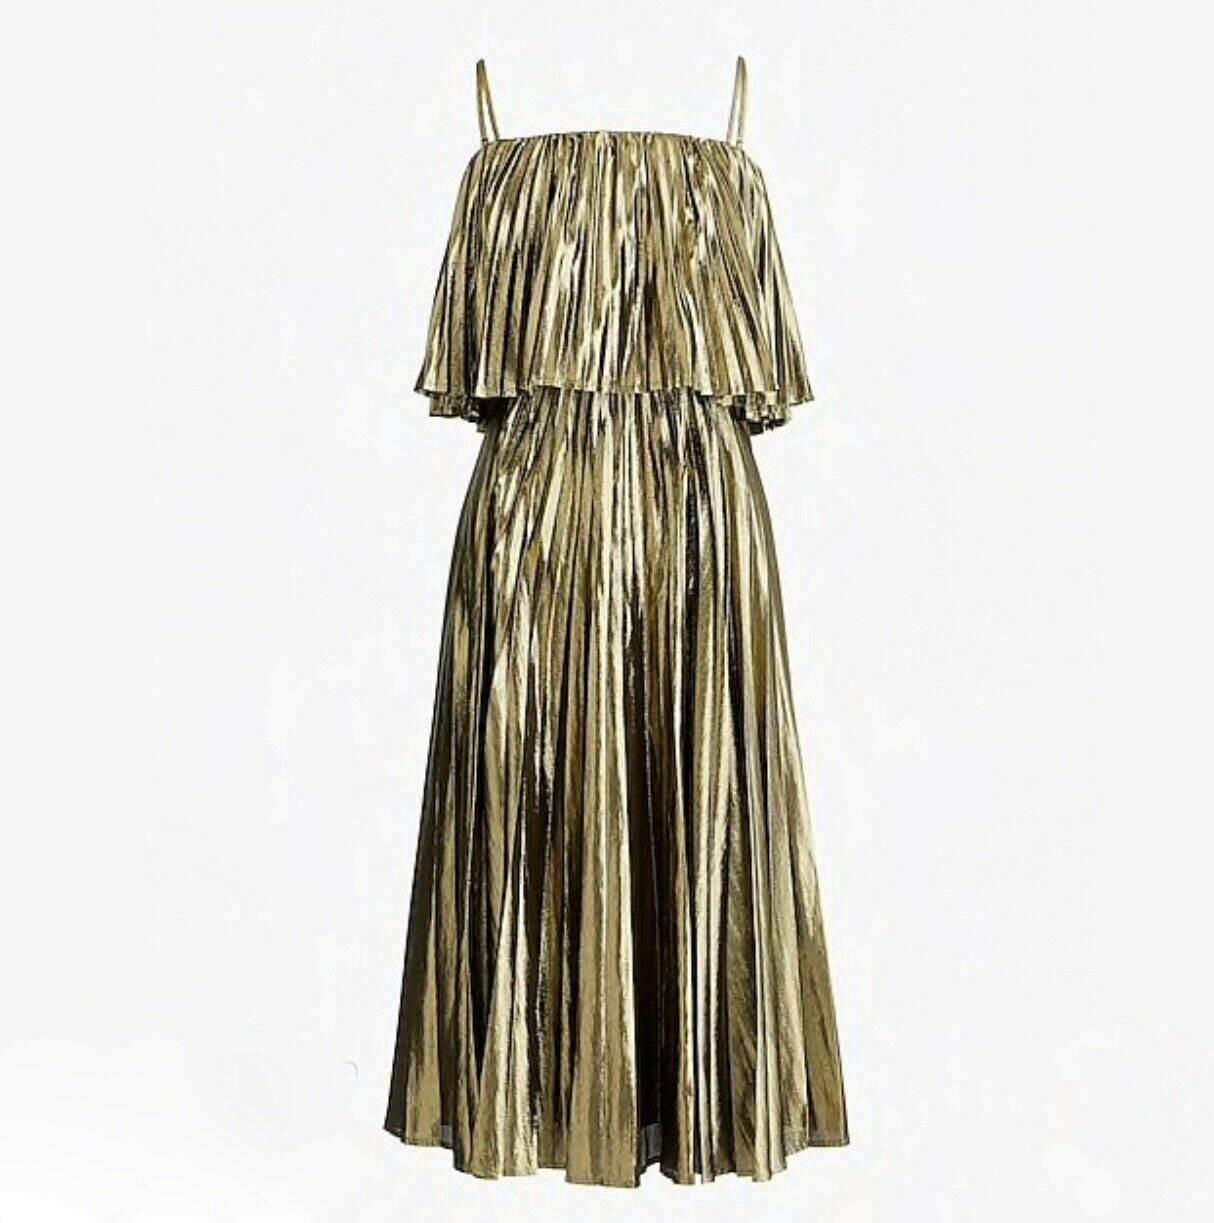 J.CREW COLLECTION PLEATED MIDI DRESS IN gold LAME SIZE 0 K4474